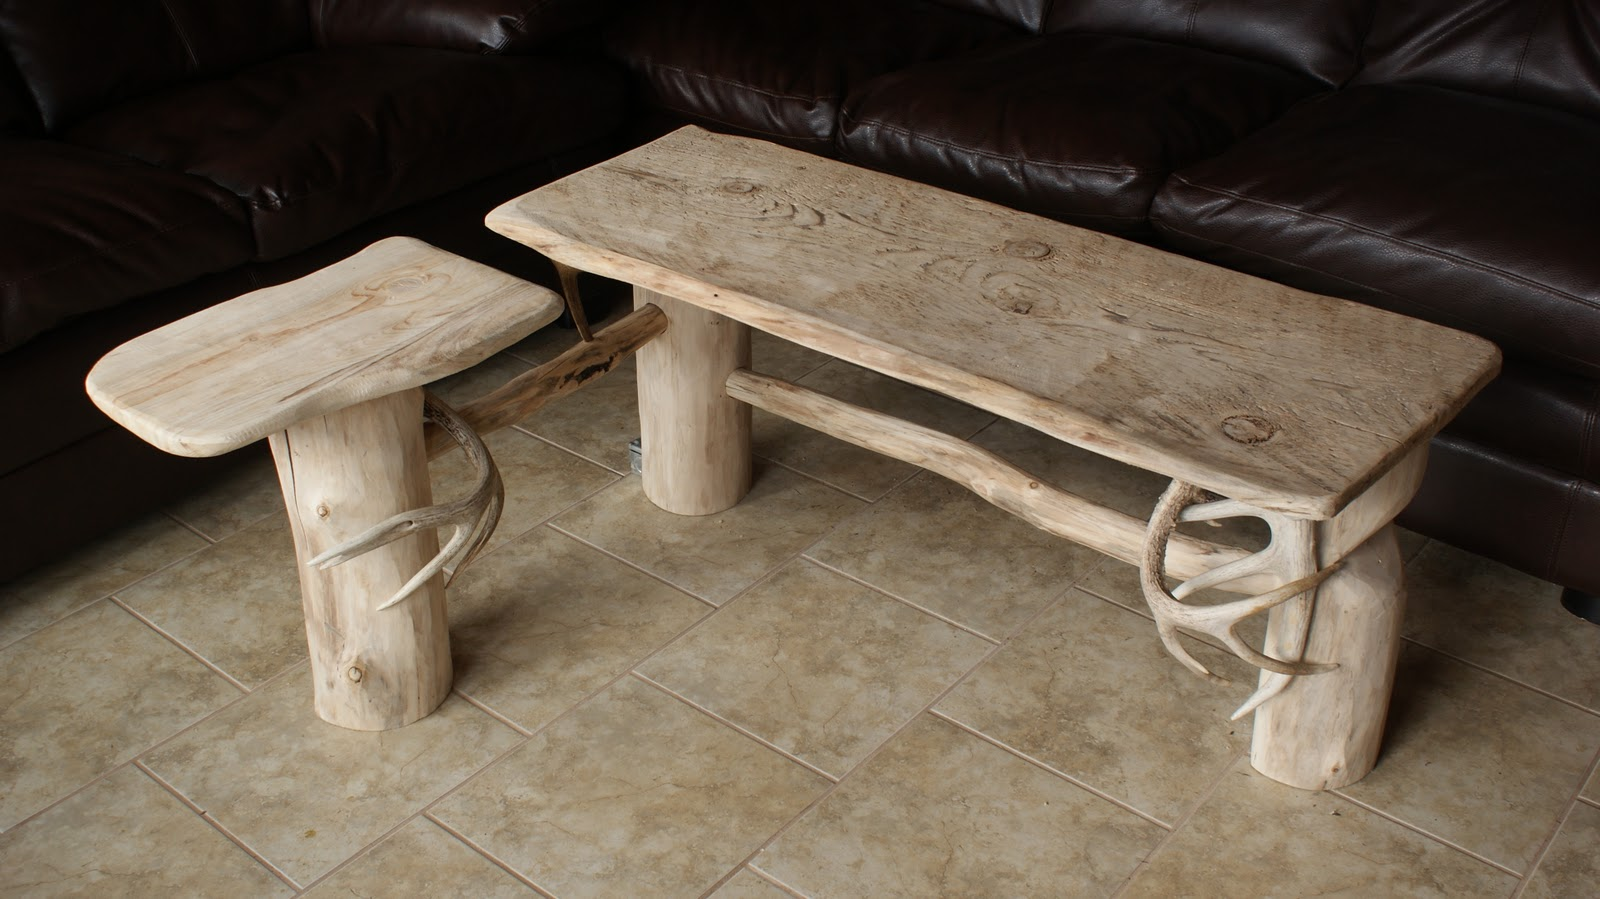 Off the Grid at -30: Frugal Tuesday - Homemade Coffee Table